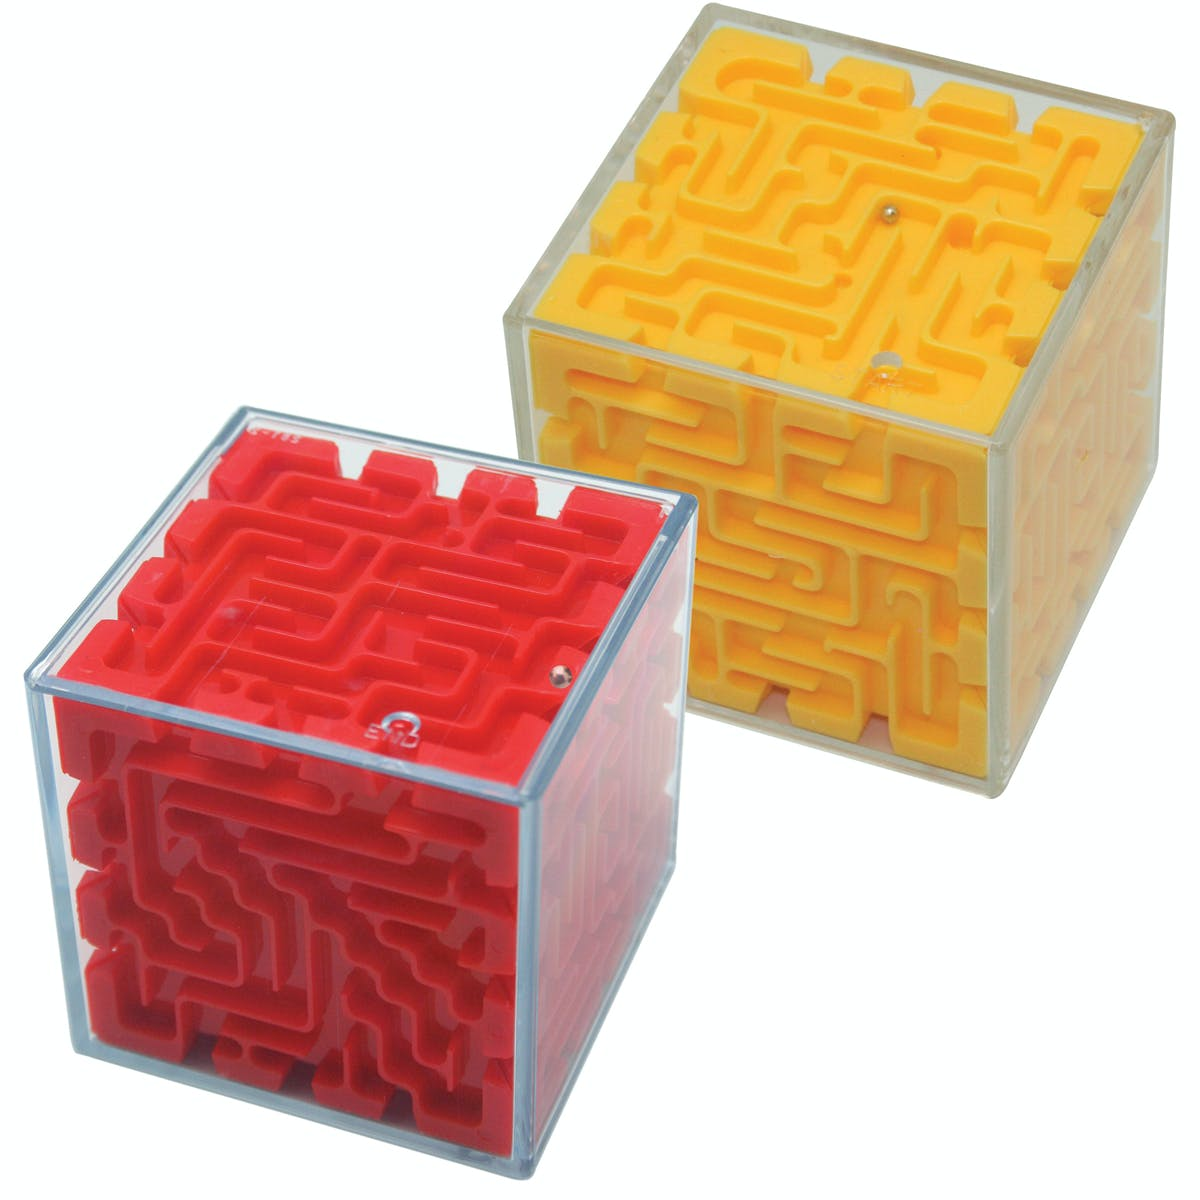 Cube Maze (Item # ZBFQM-HLXOV) Stress reliever sold by InkEasy